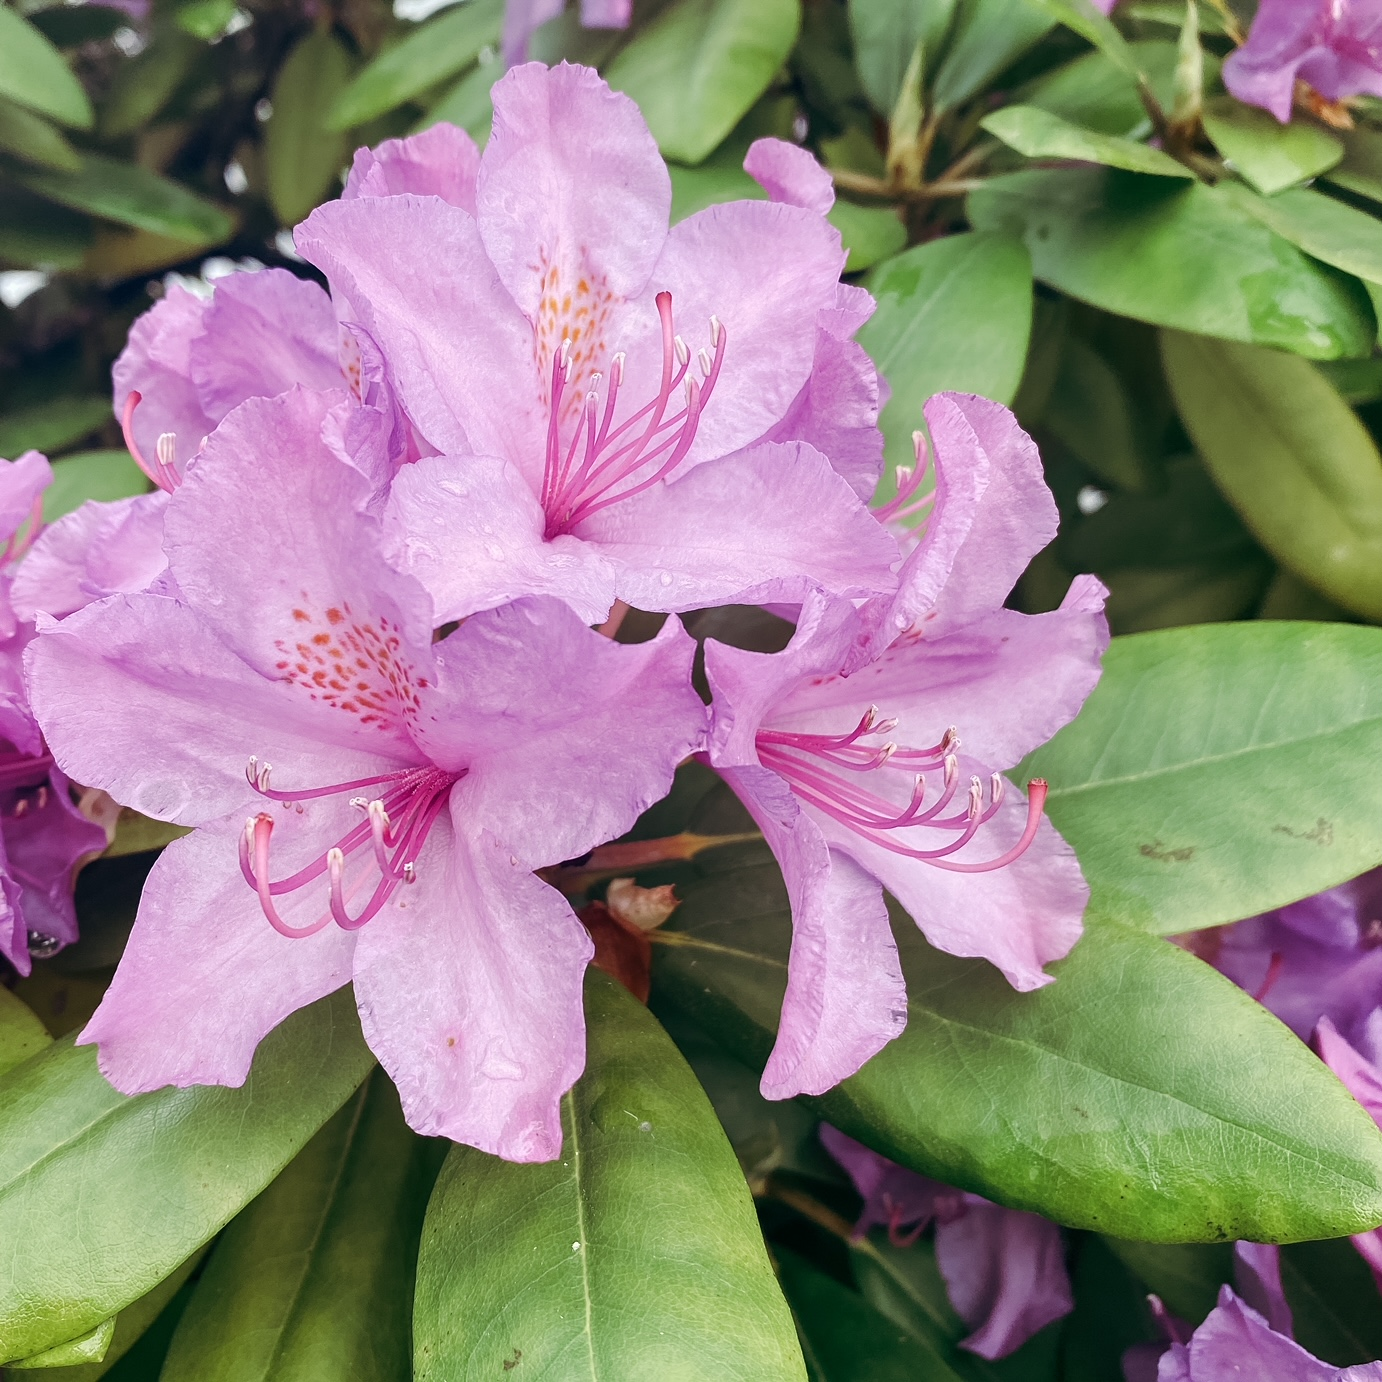 Moi j'aime les rhododendrons